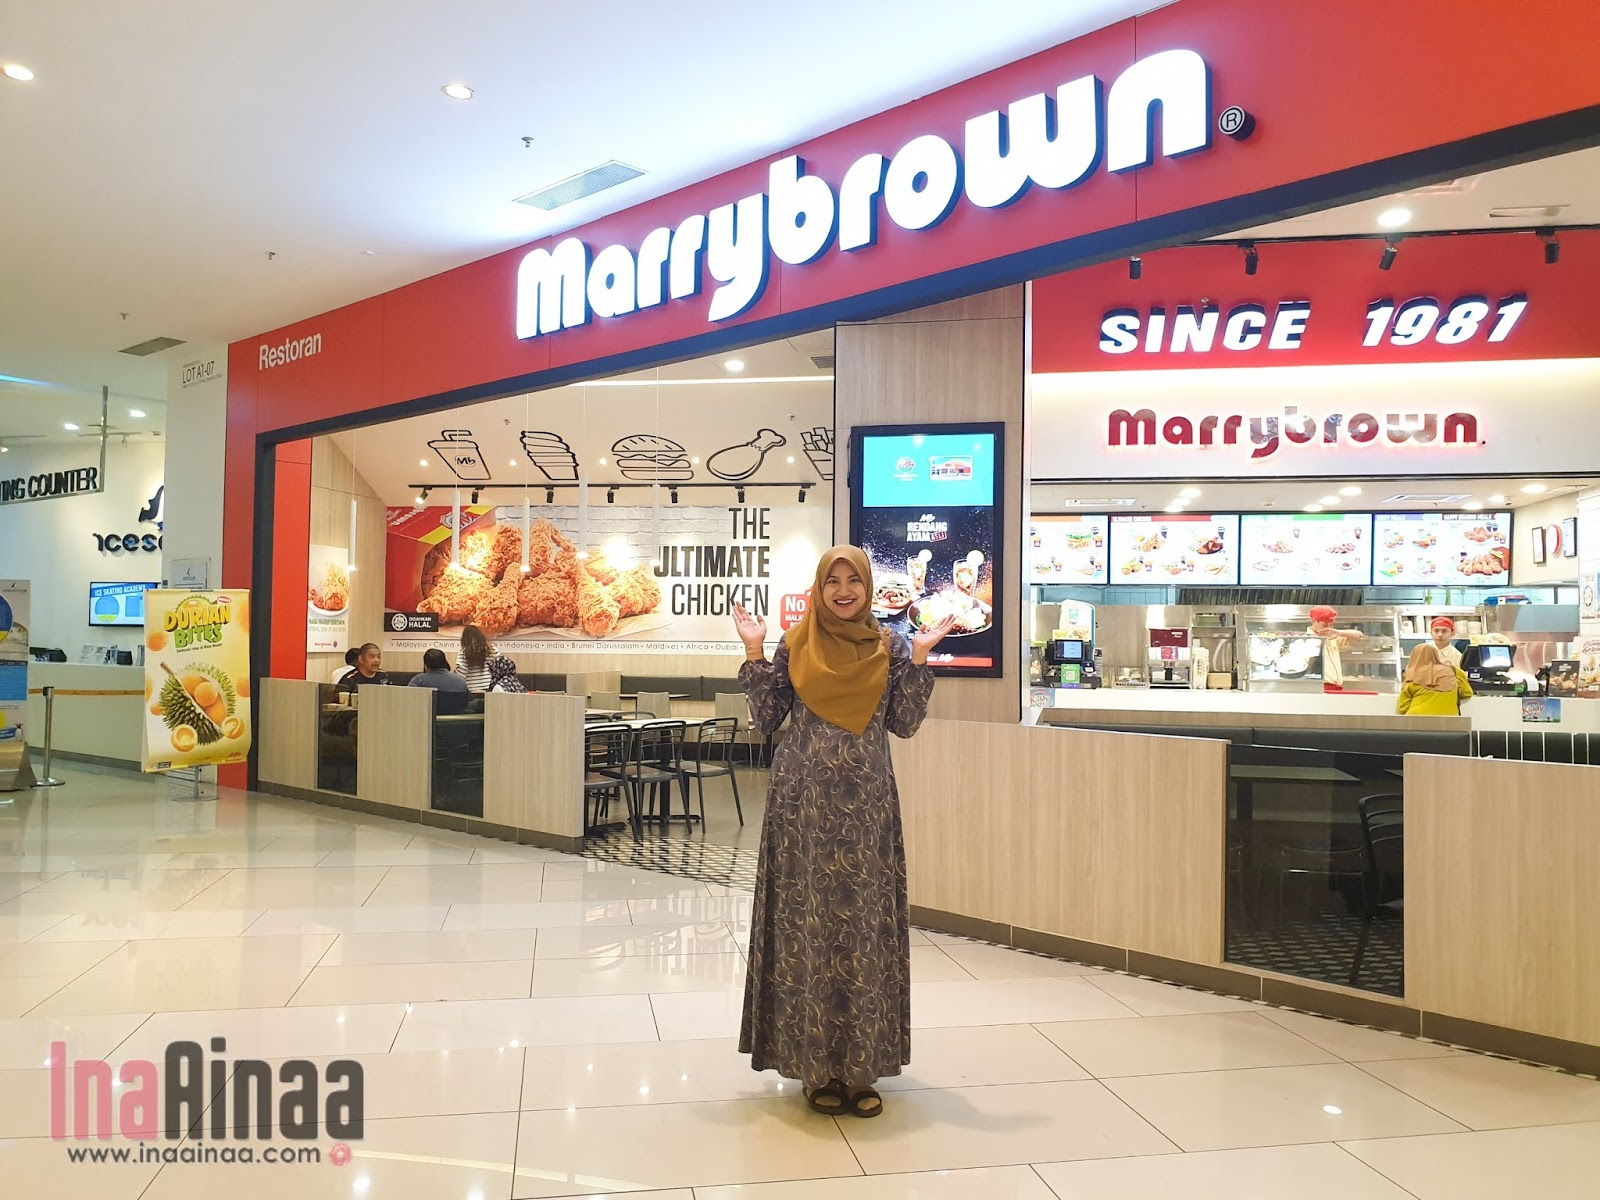 SET RENDANG MARRYBROWN - Hak Milik Ina Ainaa